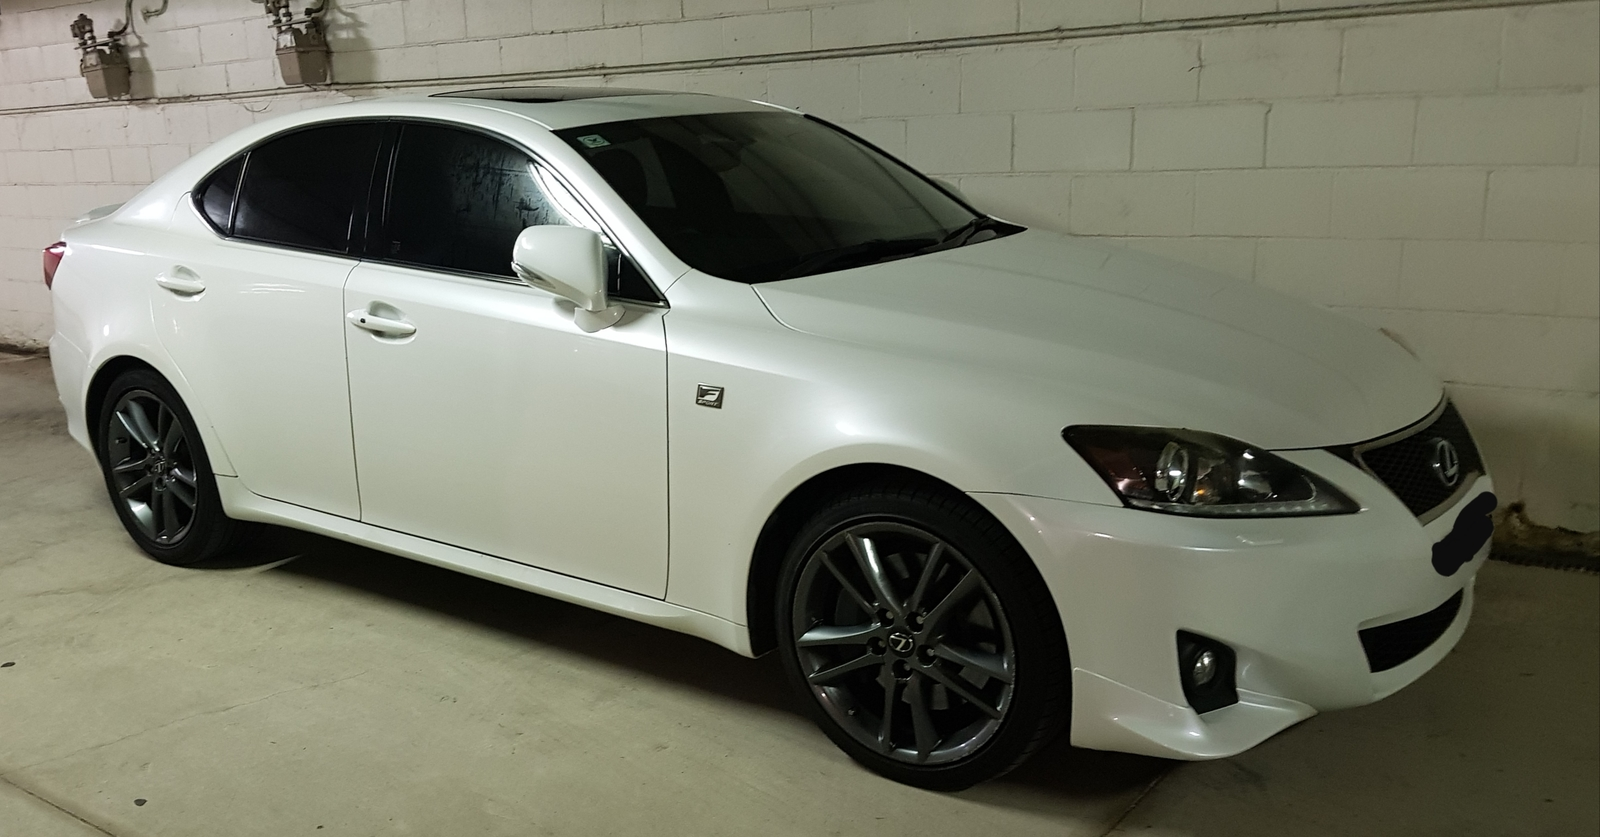 White 2011 Lexus IS350 F Sport